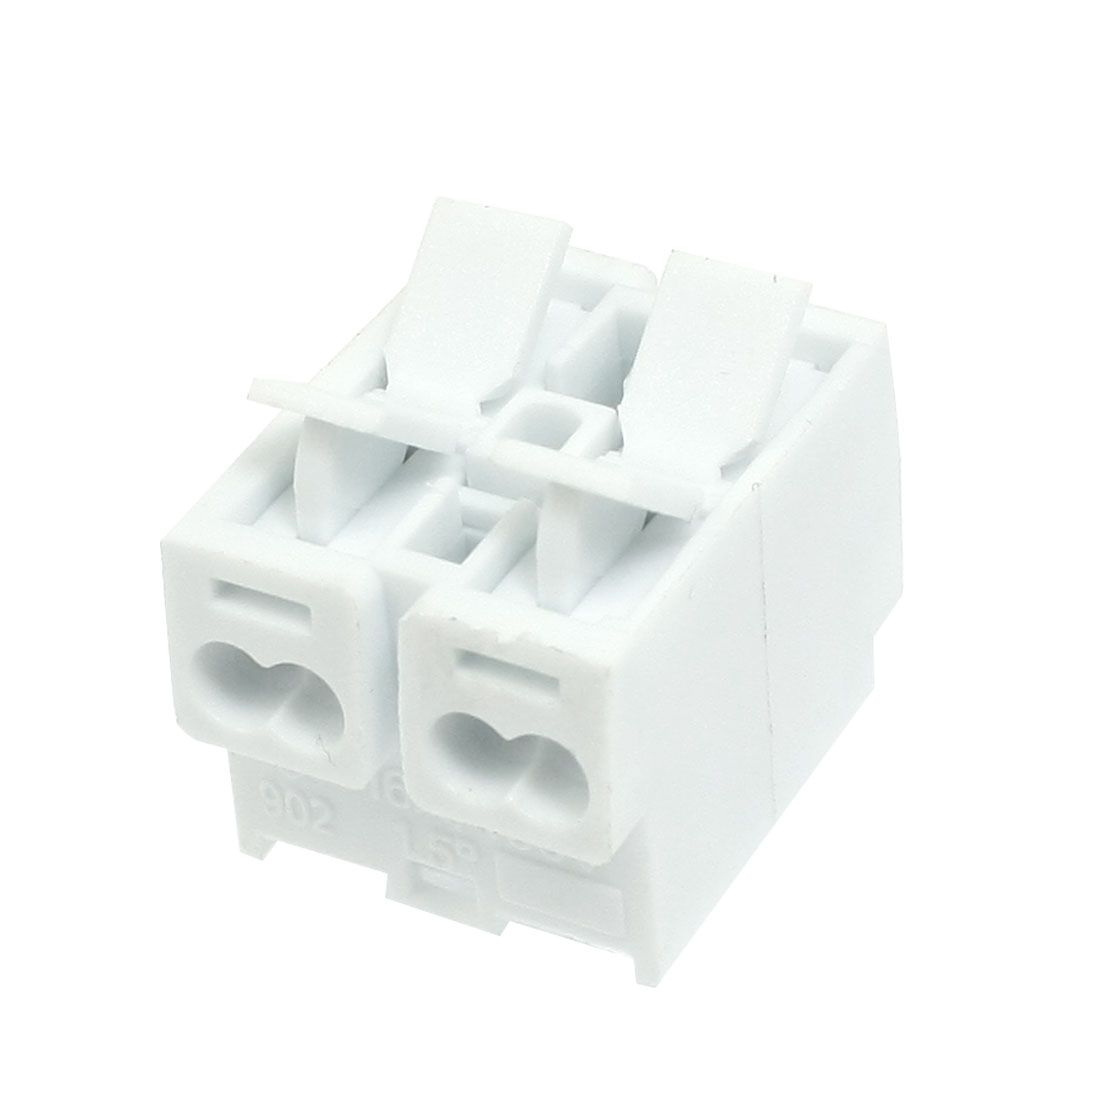 Audio Cable Wire Push in Jack Socket 2 Position Speaker Terminal Block White